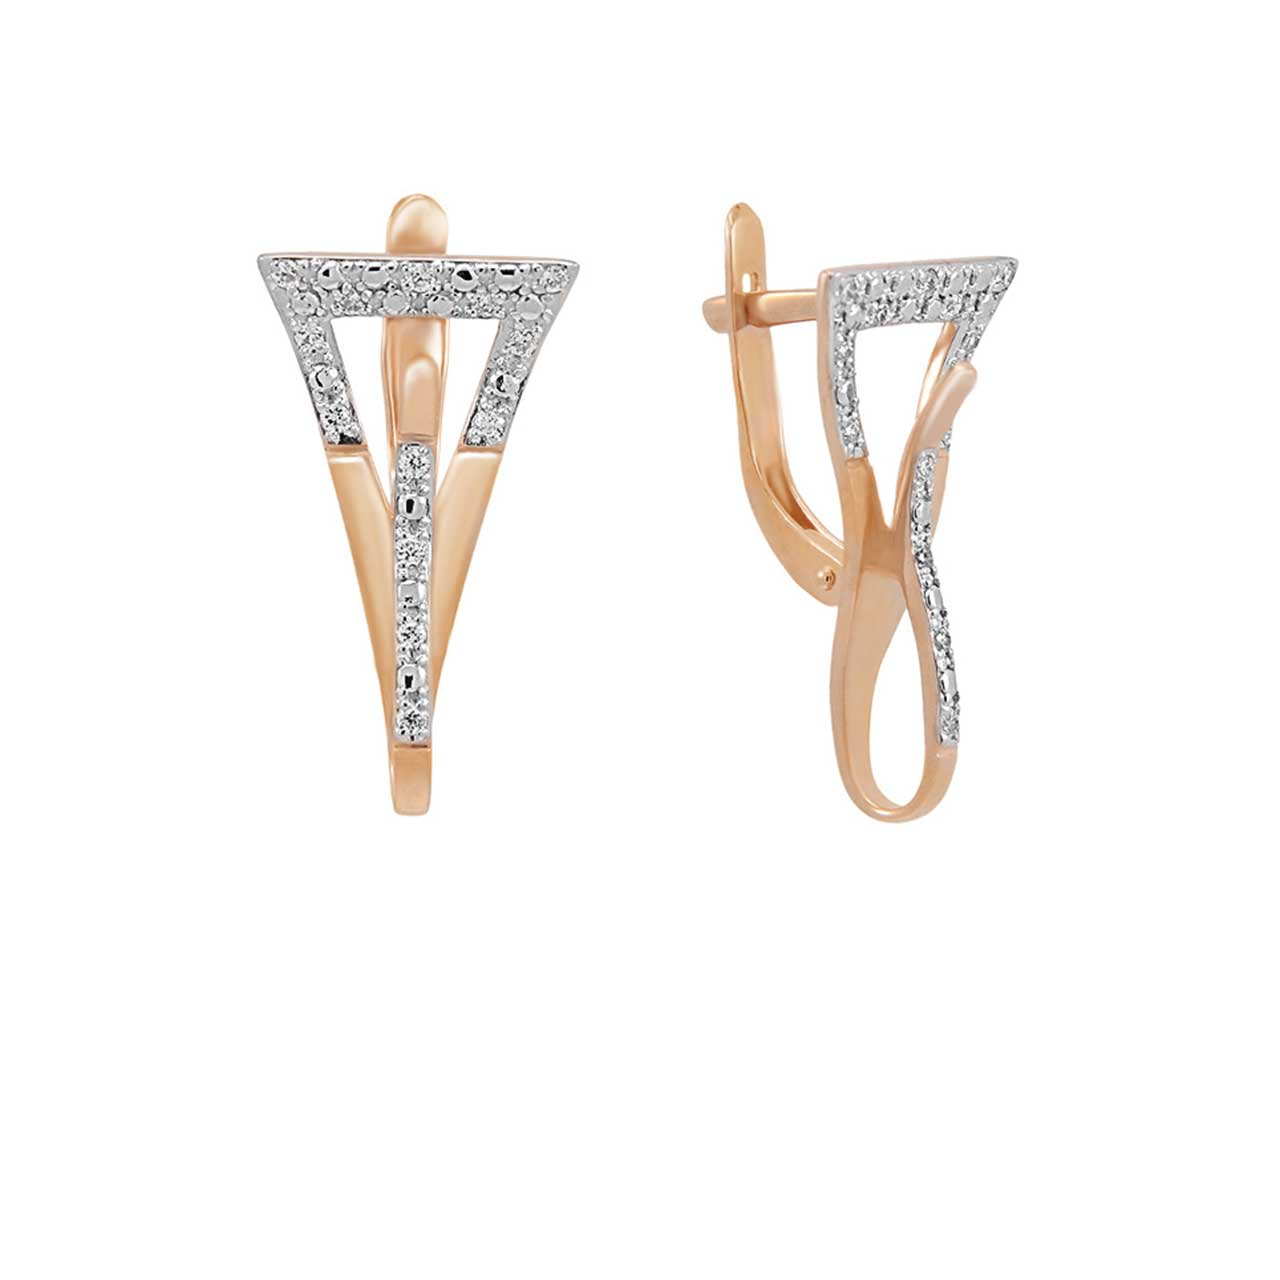 CZ High Fashion Earrings